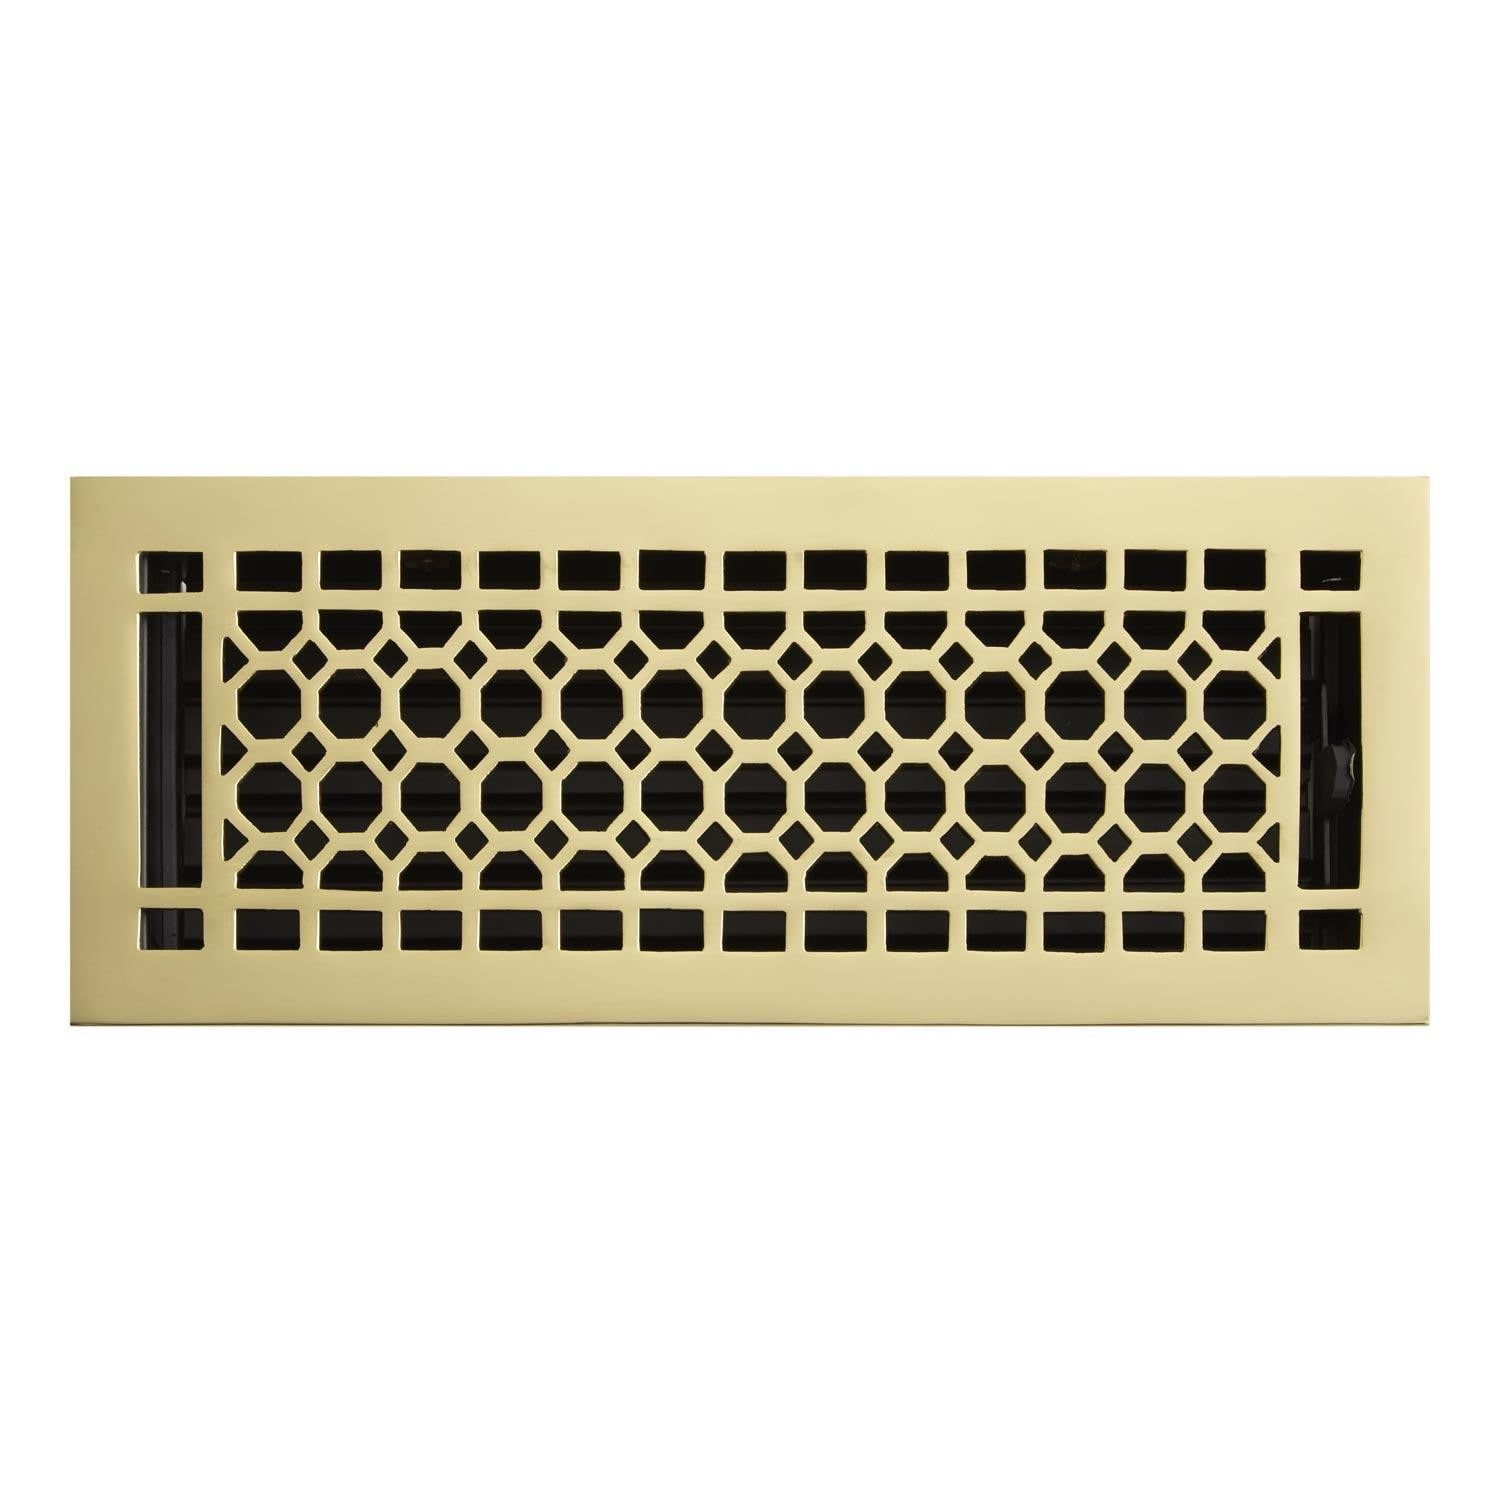 Honeycomb Brass Wall Register Floor Registers Wall Registers Flooring